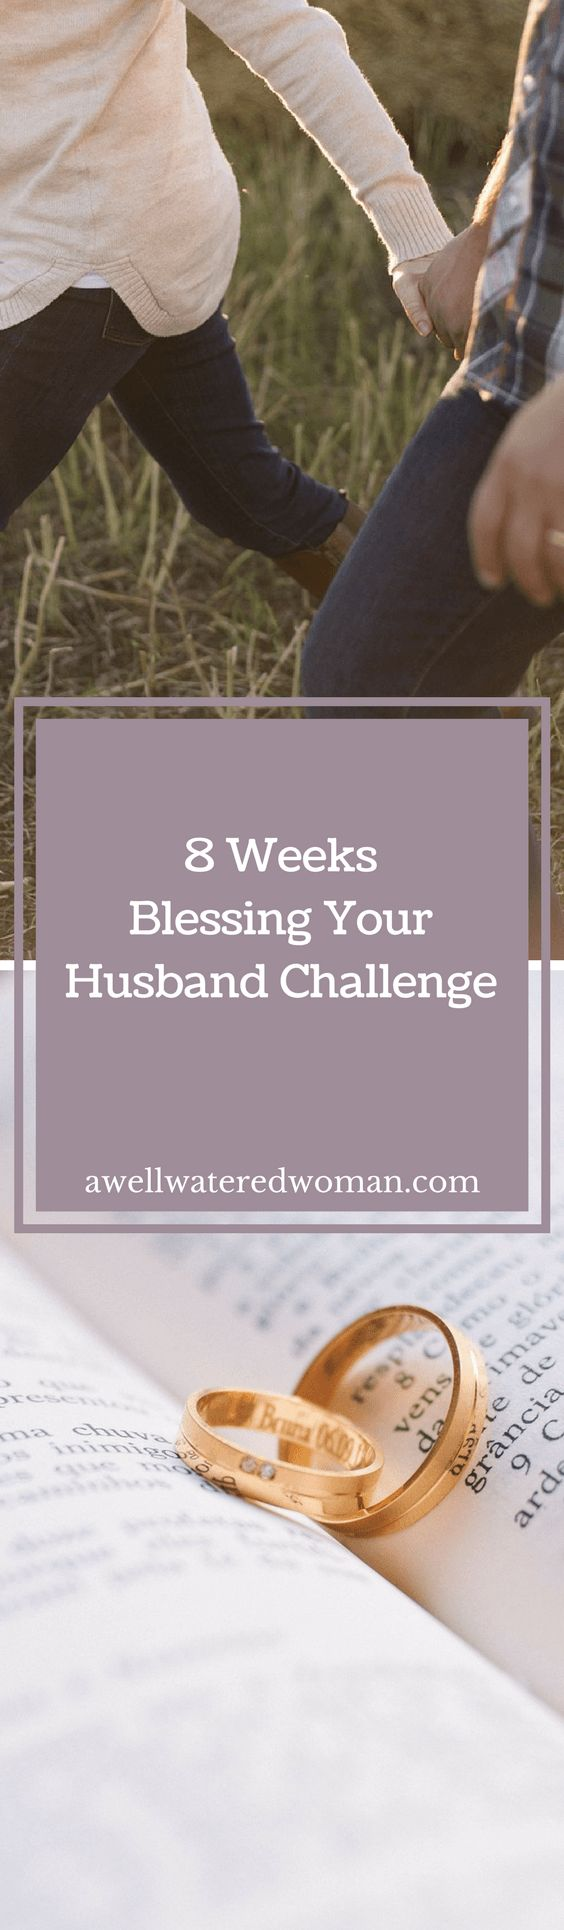 8 Weeks Of Blessing Your Husband Challenge. Marriage is so important to God and He smiles down on us when we embrace the calling He has laid before us